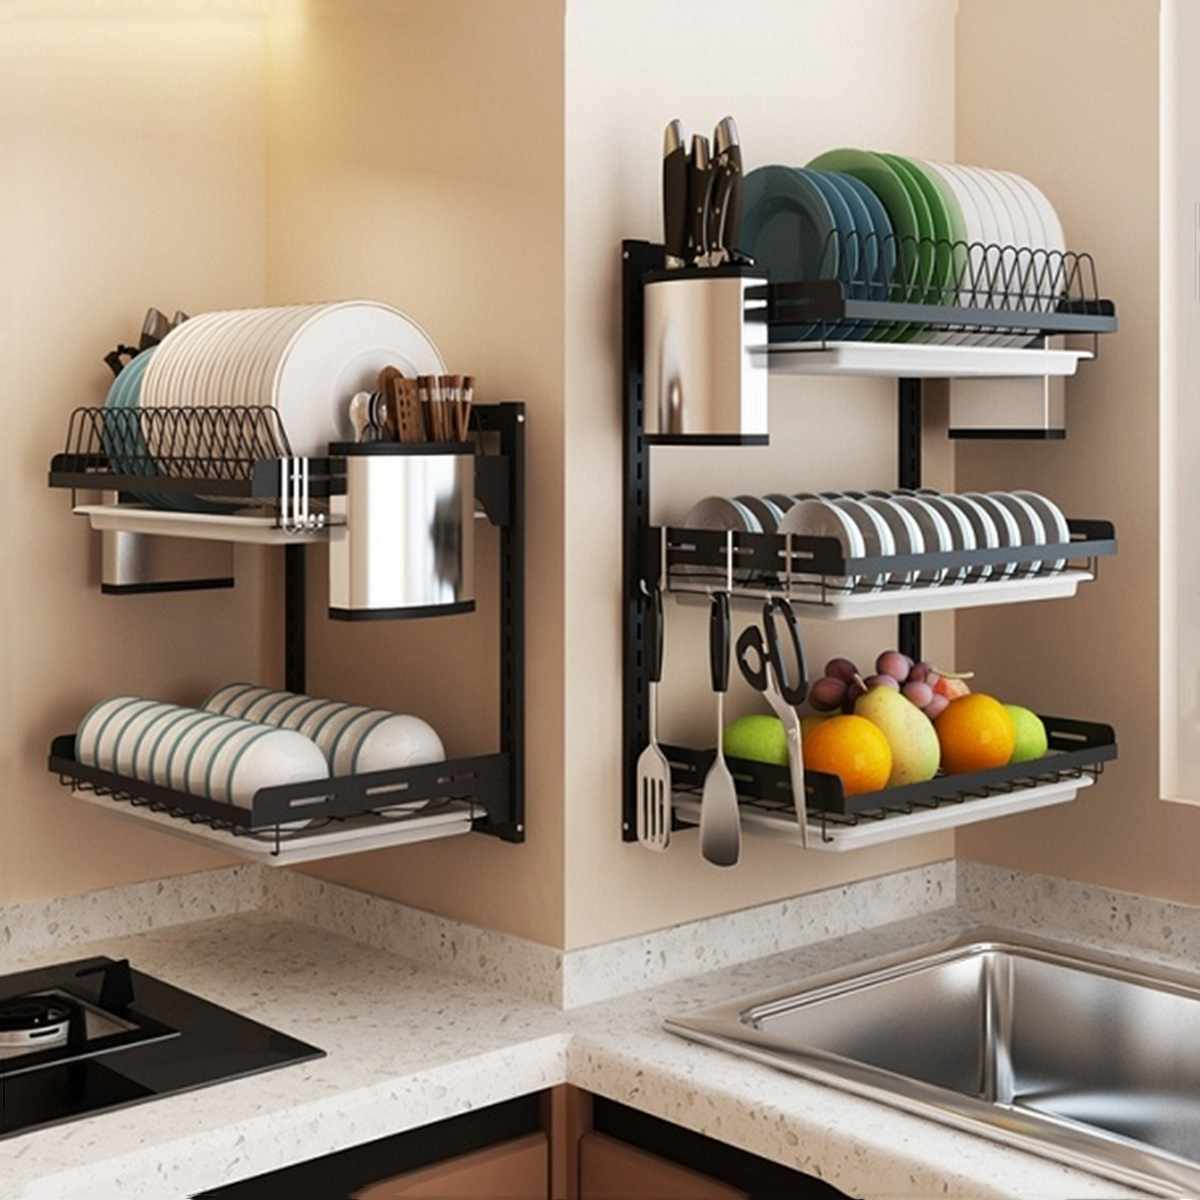 304 Stainless Steel Kitchen Dish Rack Plate Cutlery Cup Dish Drainer Drying Rack Wall Mount Kitchen Organizer Storage Holder